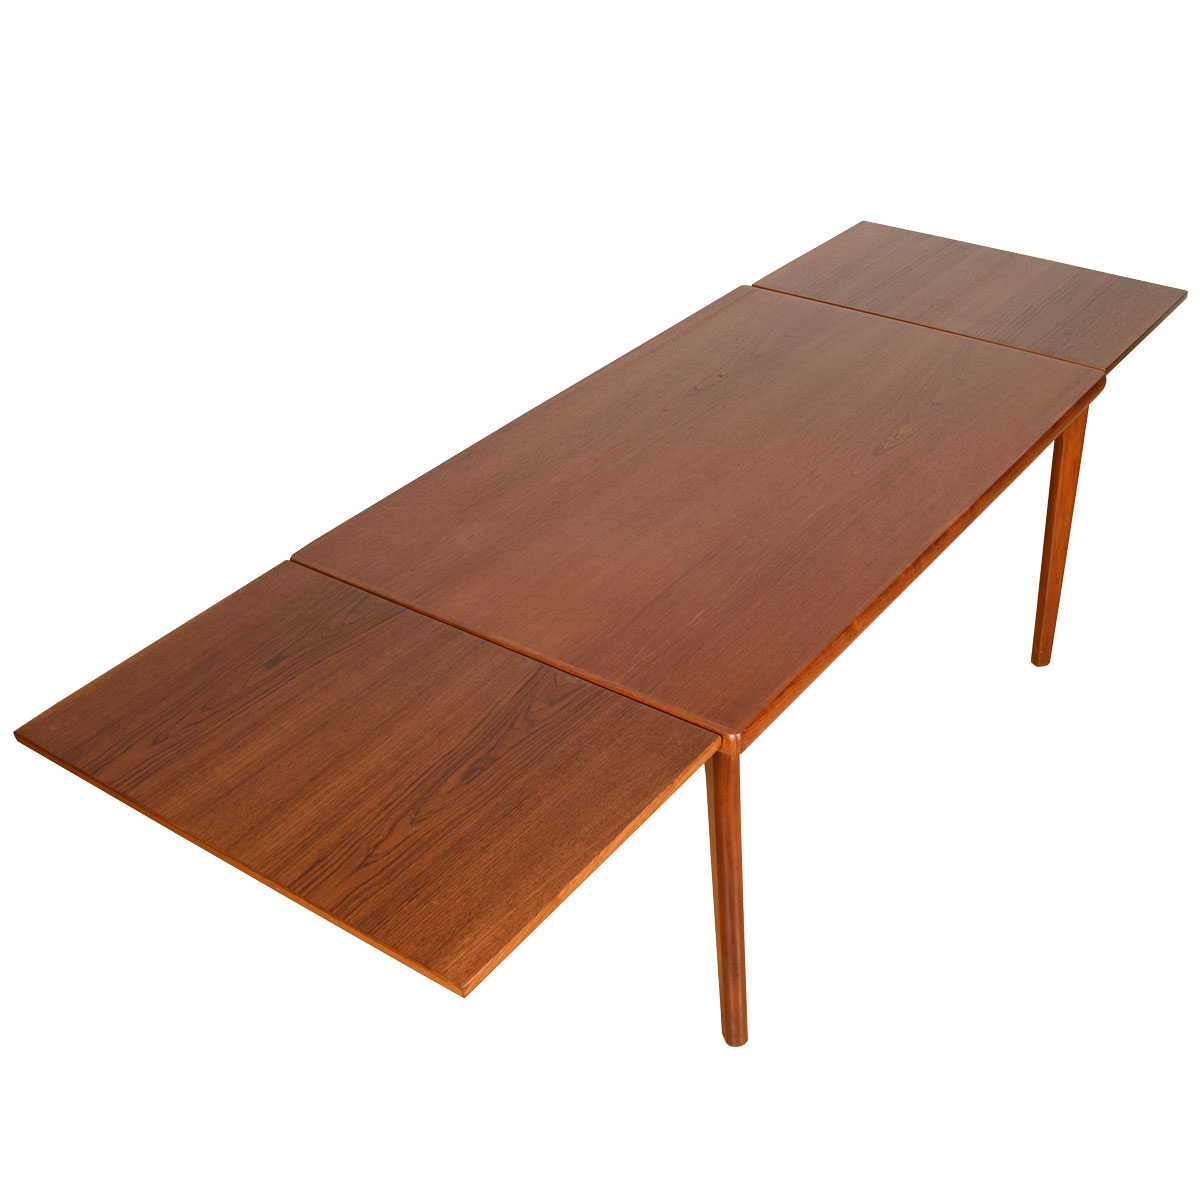 Compact Danish Modern Teak Rectangular Expanding Dining Table